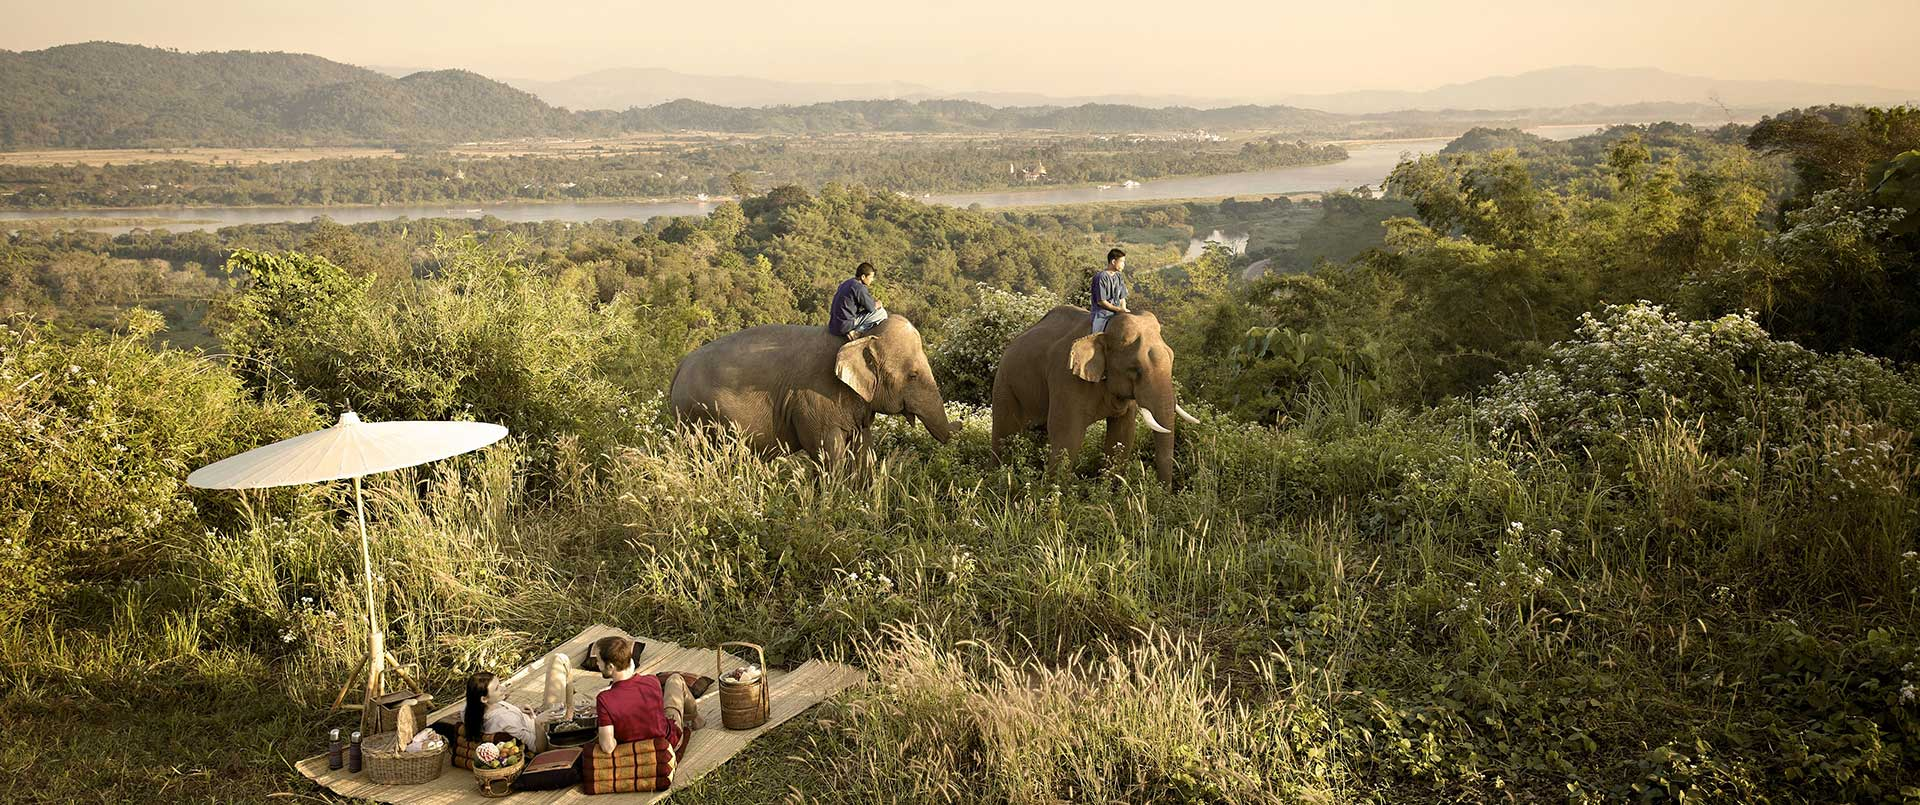 Anantara Golden Triangle Elephant Camp, Chiang Rai